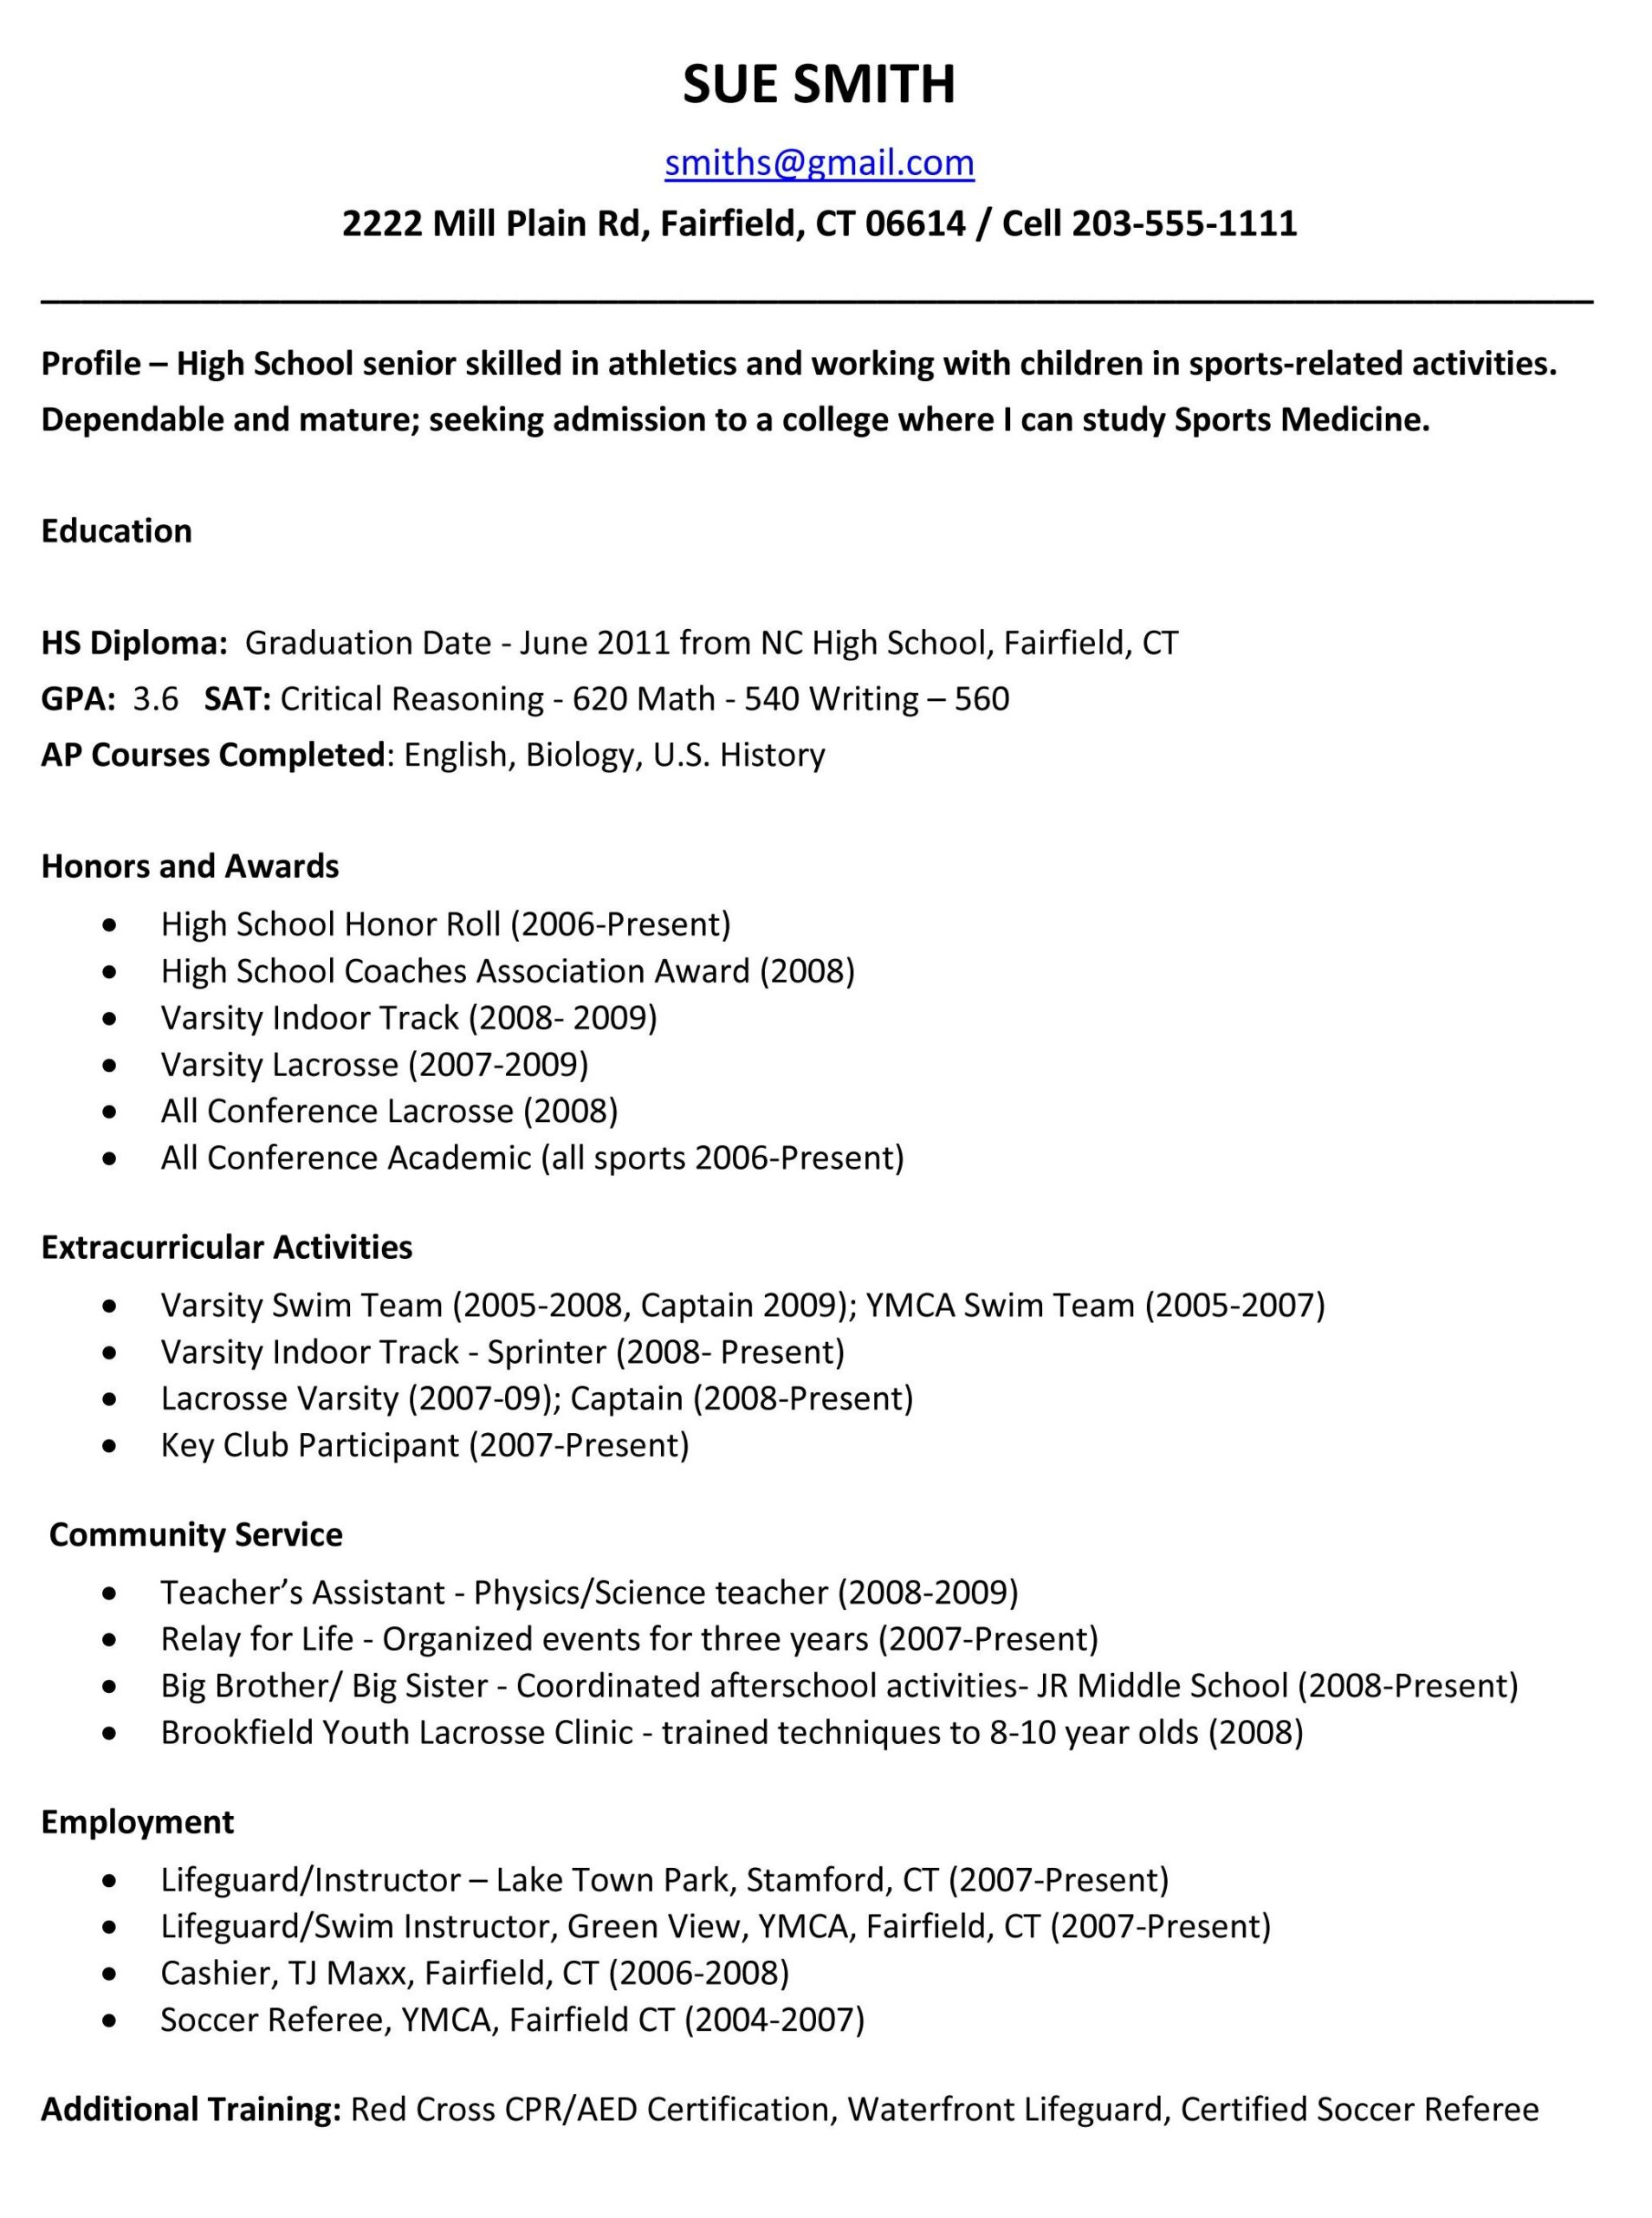 sample resumes high school resume template college application help for students best Resume Resume Help For High School Students